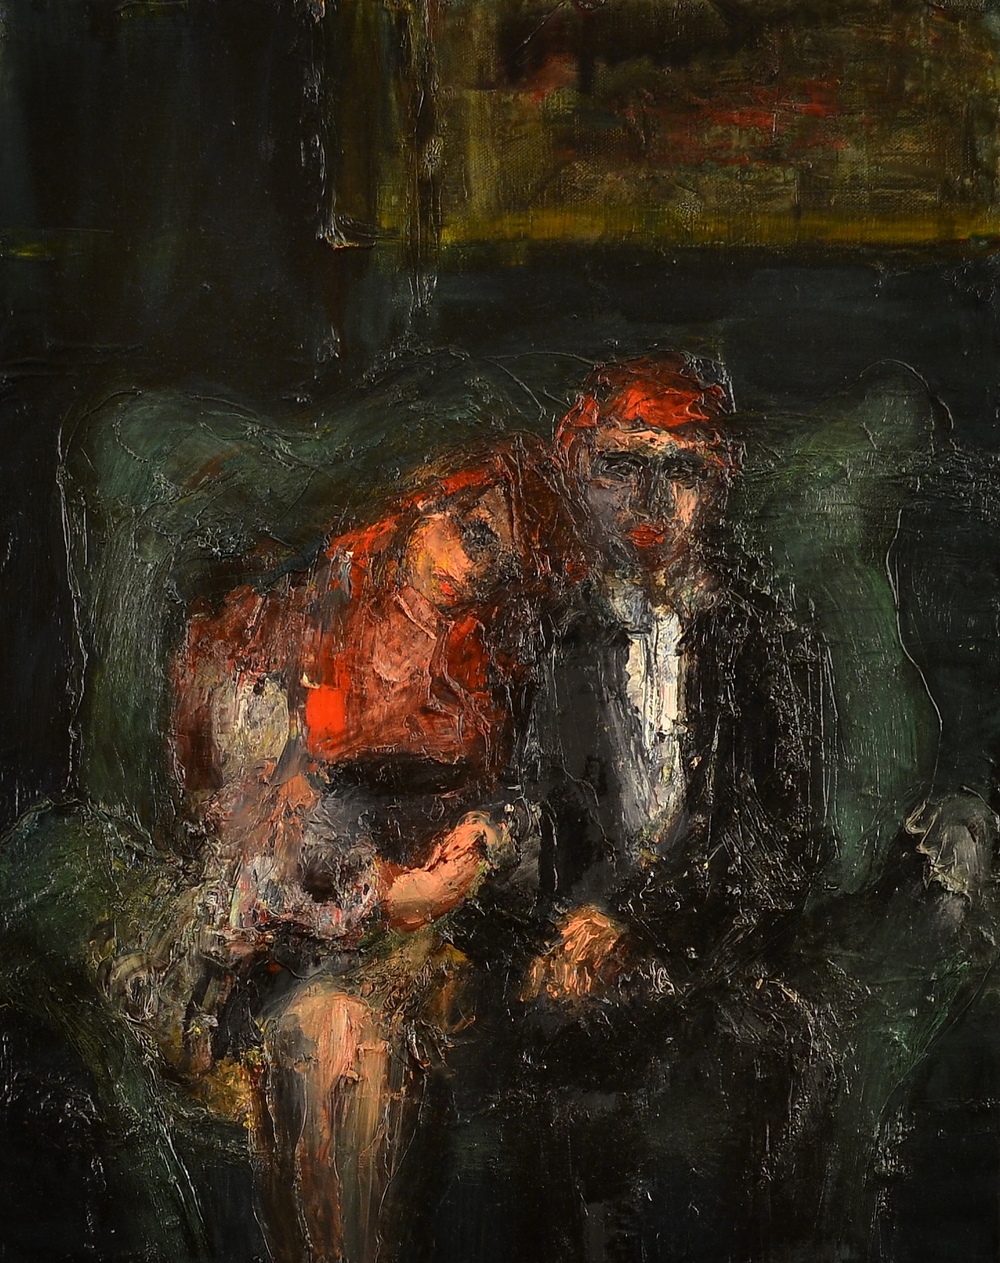 Seated Couple (Red), Oil on canvas, 20 x 16 inches